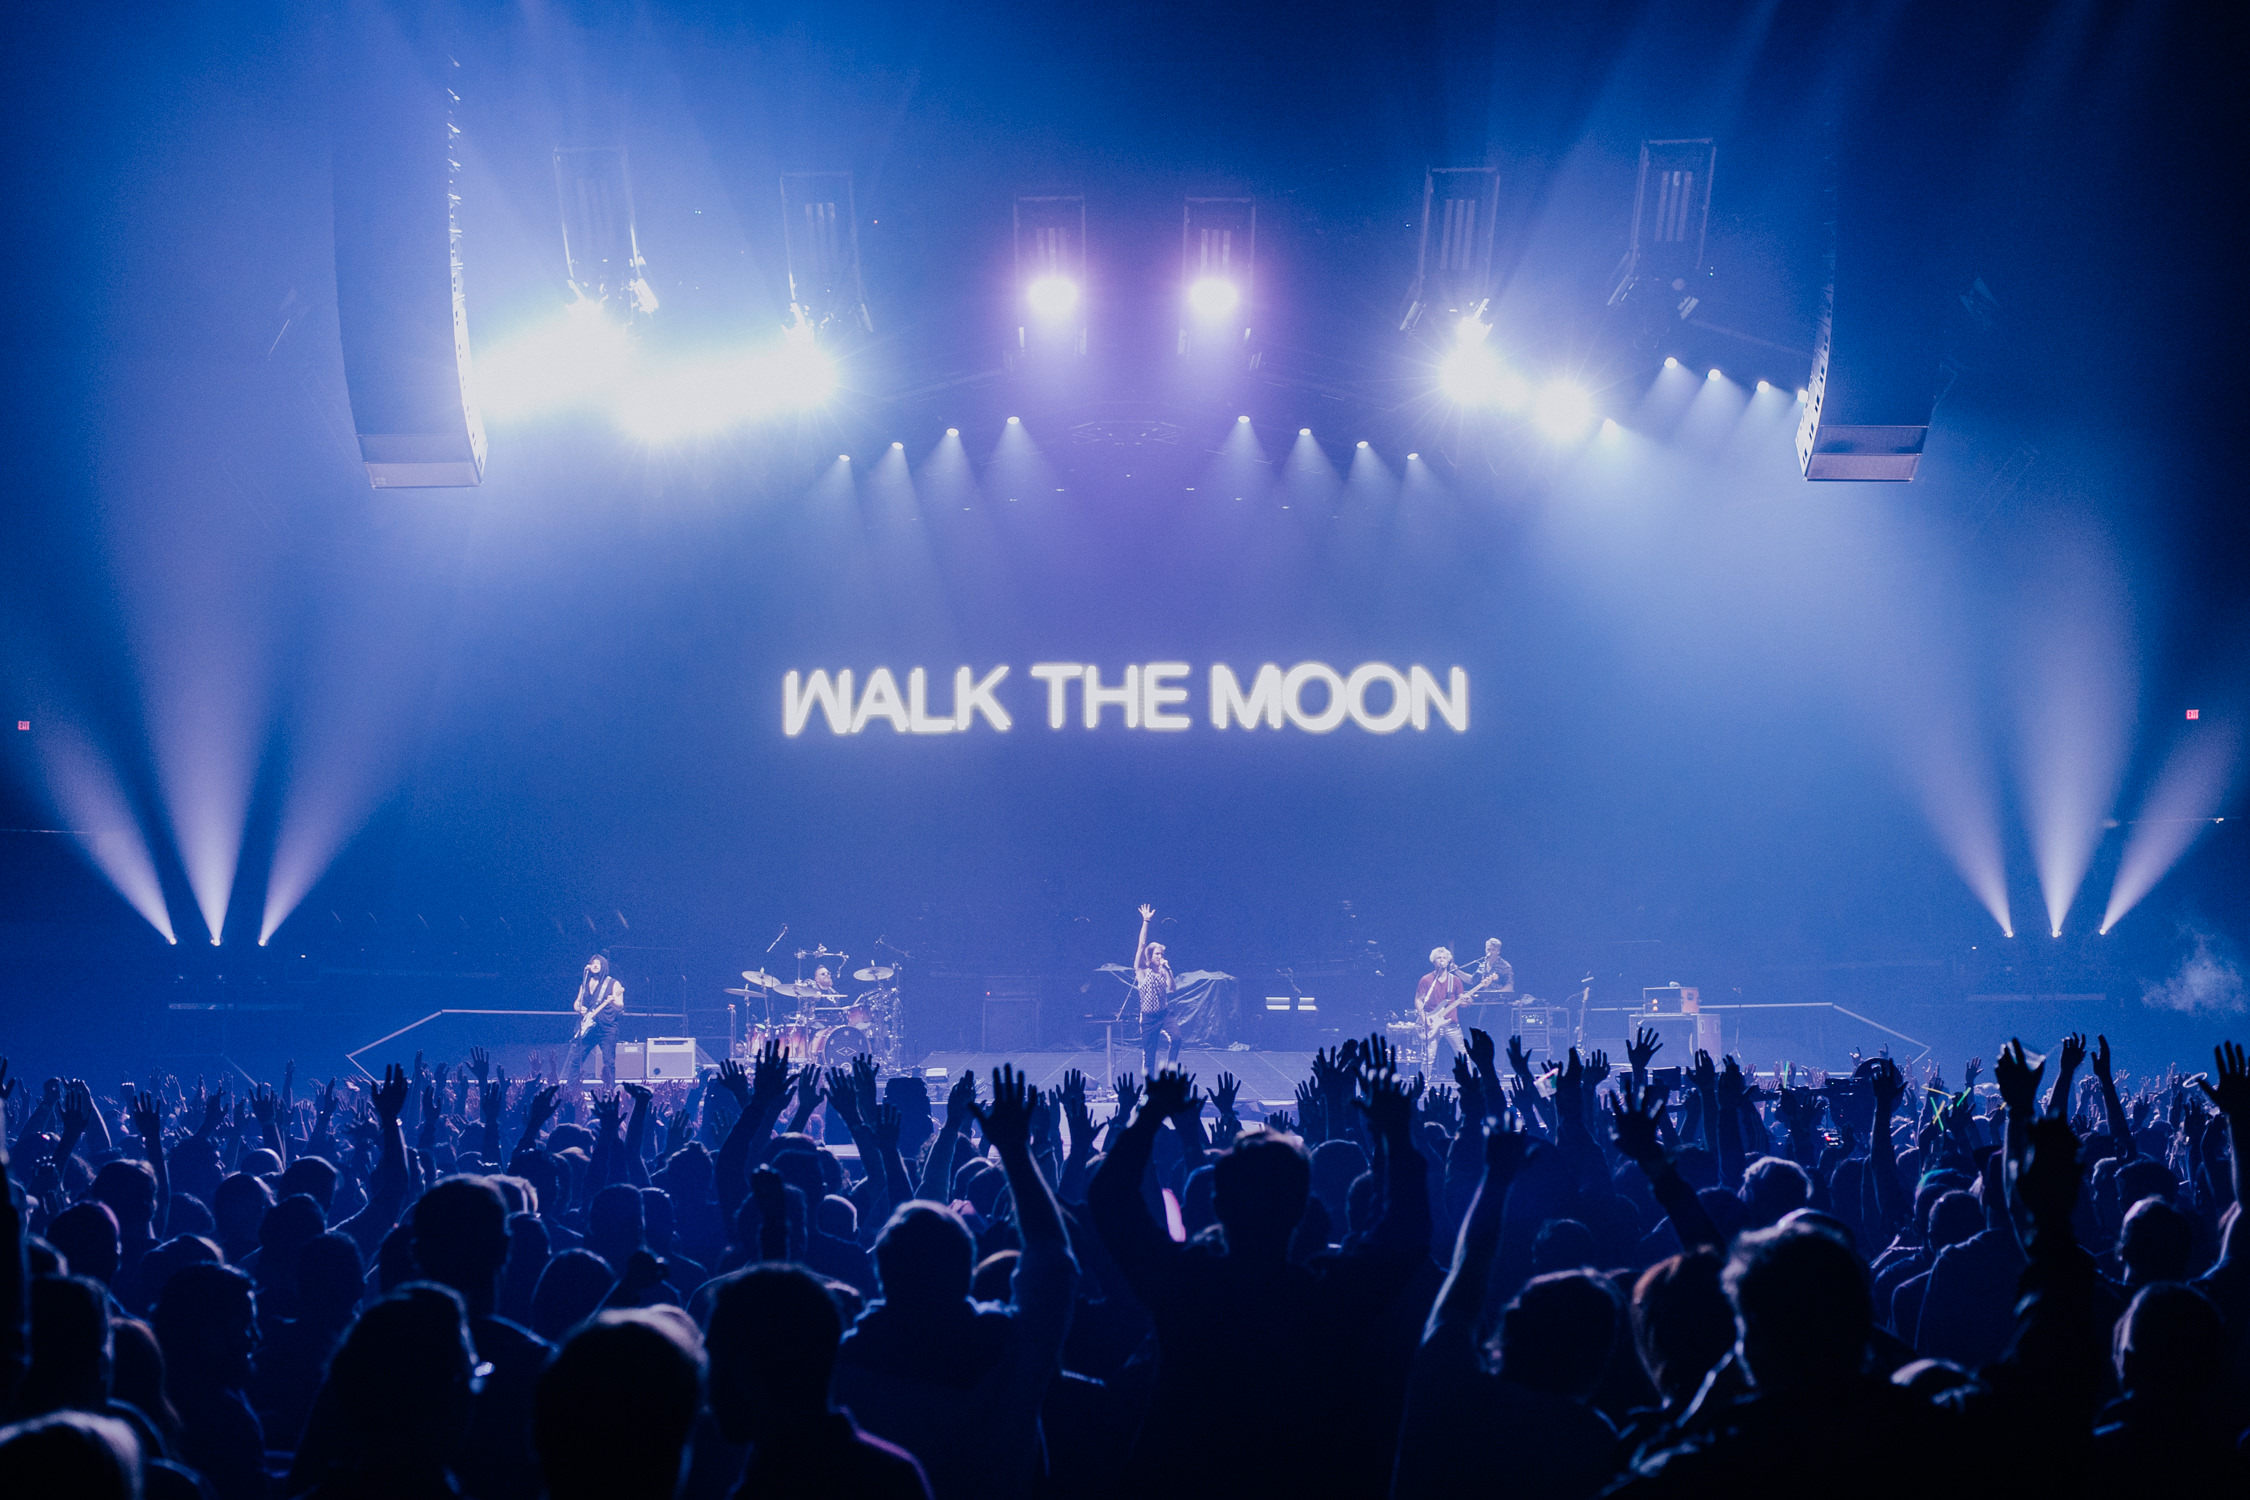 walk-the-moon-big-show-crowd-hands-up-muse-tour-AnnaLeeMedia